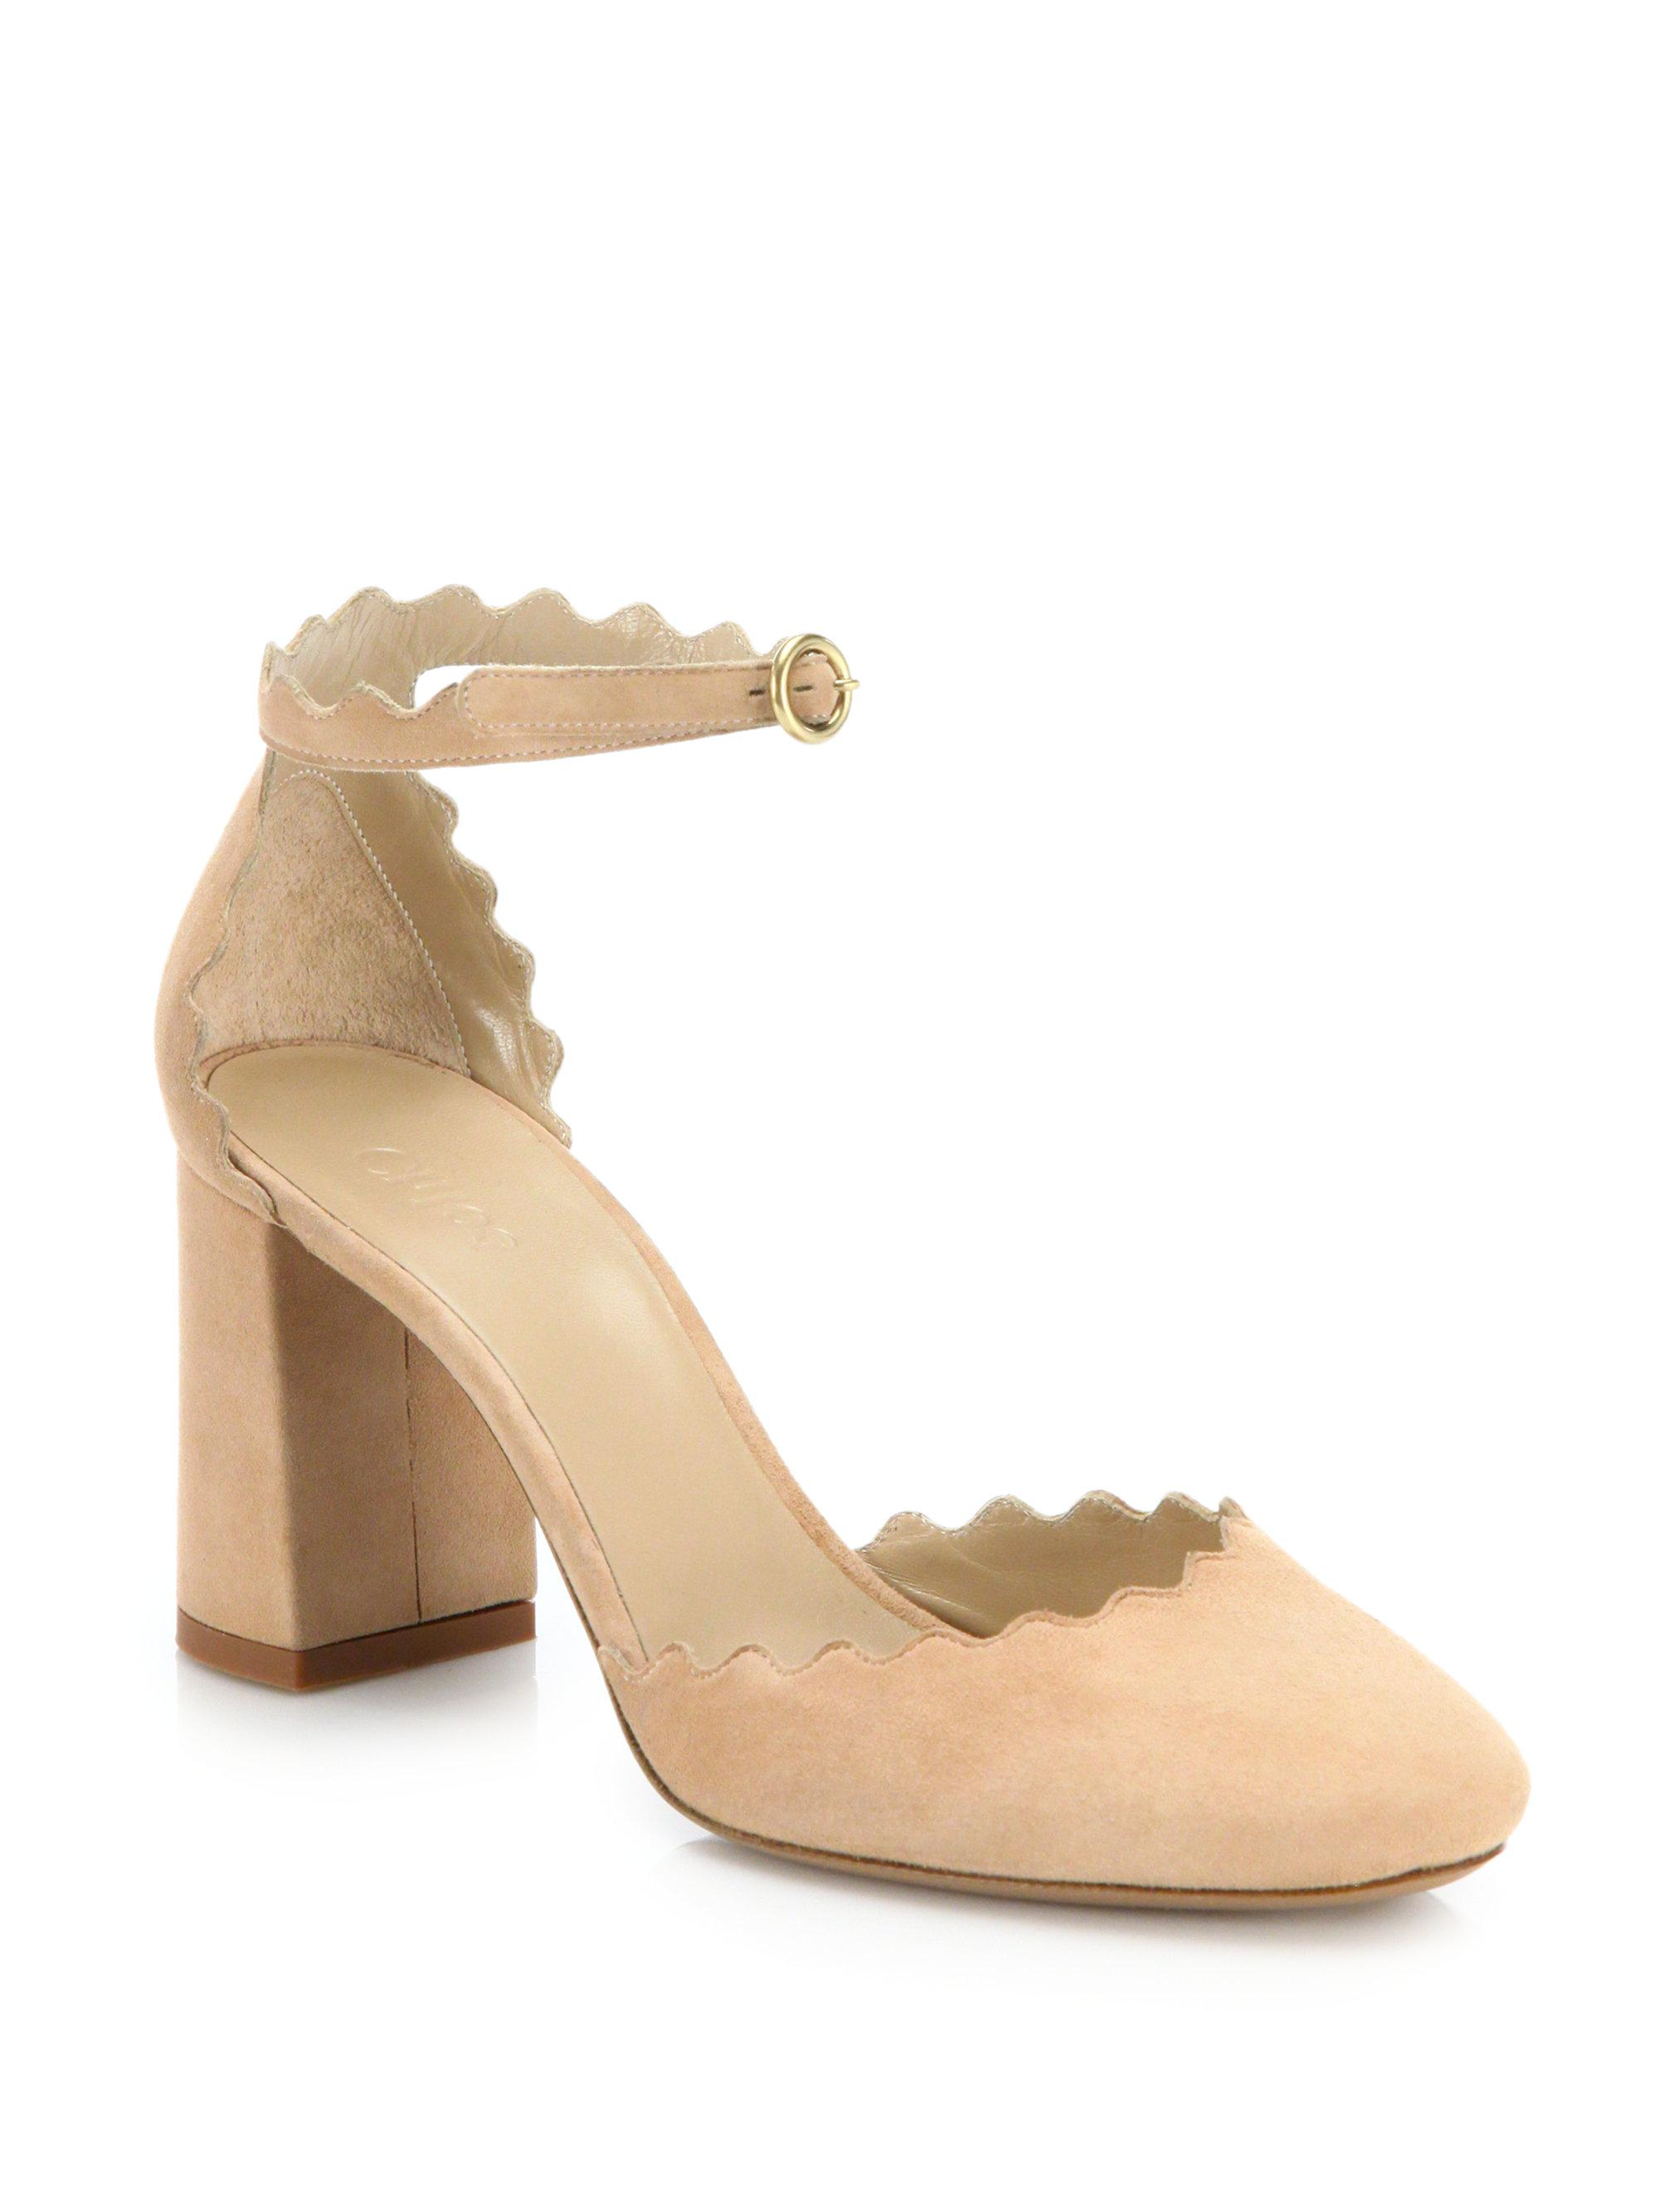 Chloé Snakeskin D'Orsay Pumps where to buy low price cheap sale fashion Style for sale free shipping sale online shop discount outlet store PEuFo0nA